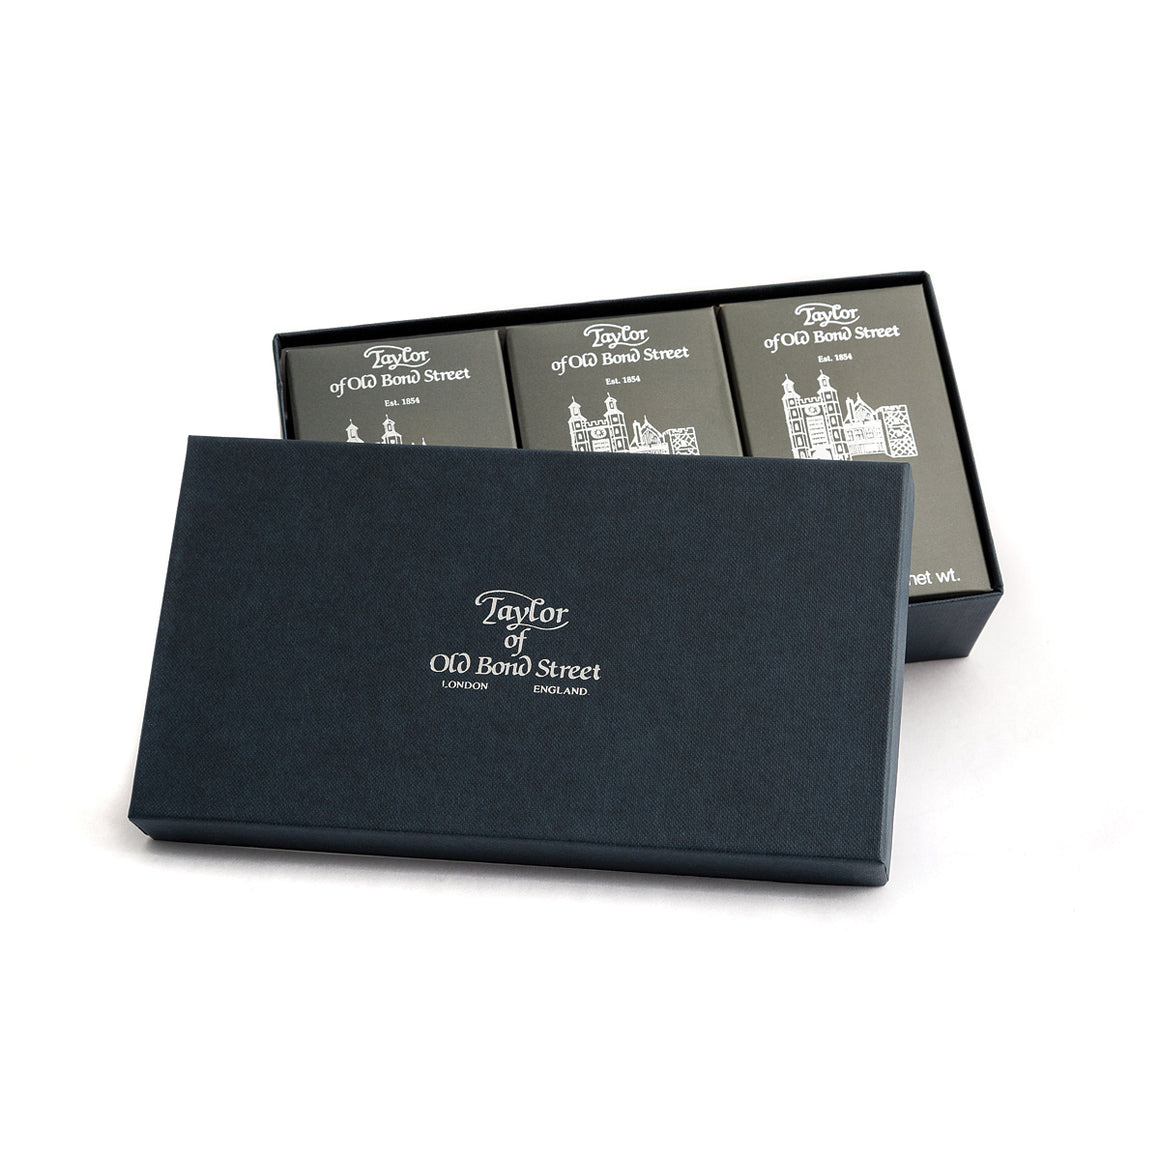 Taylor of Old Bond Street Eton Collection Bath Soap Gift Box